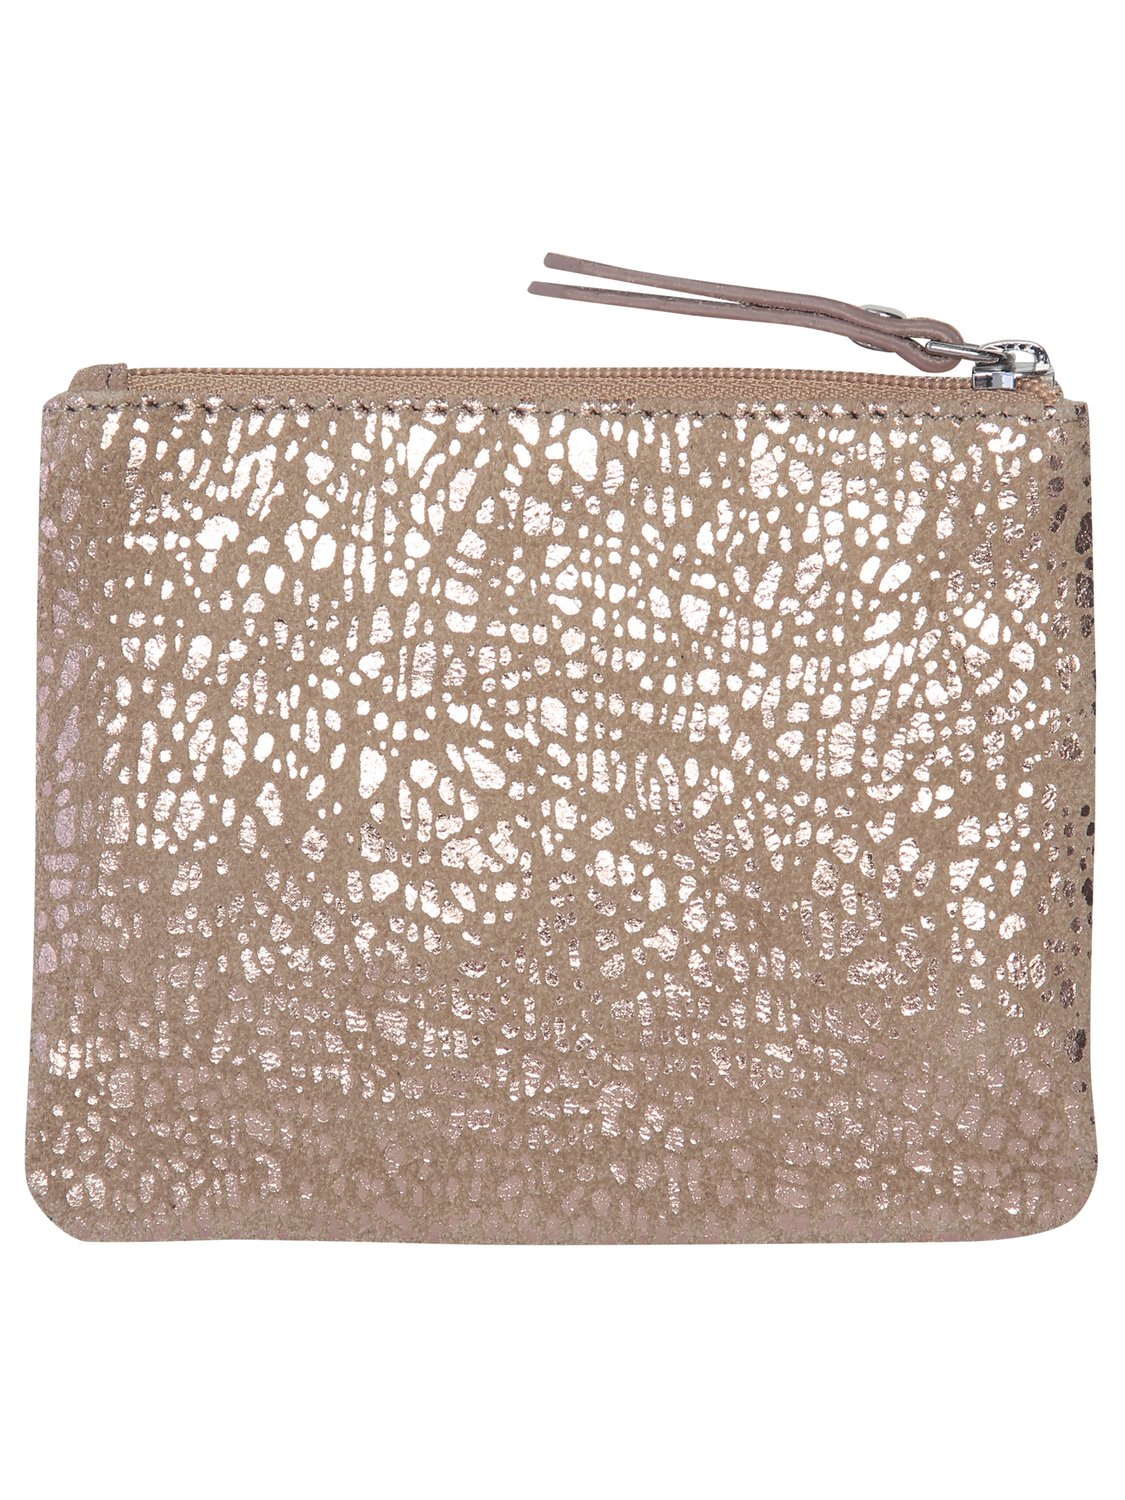 Coin purse in real leather wth rose gold foil textured print - Rose